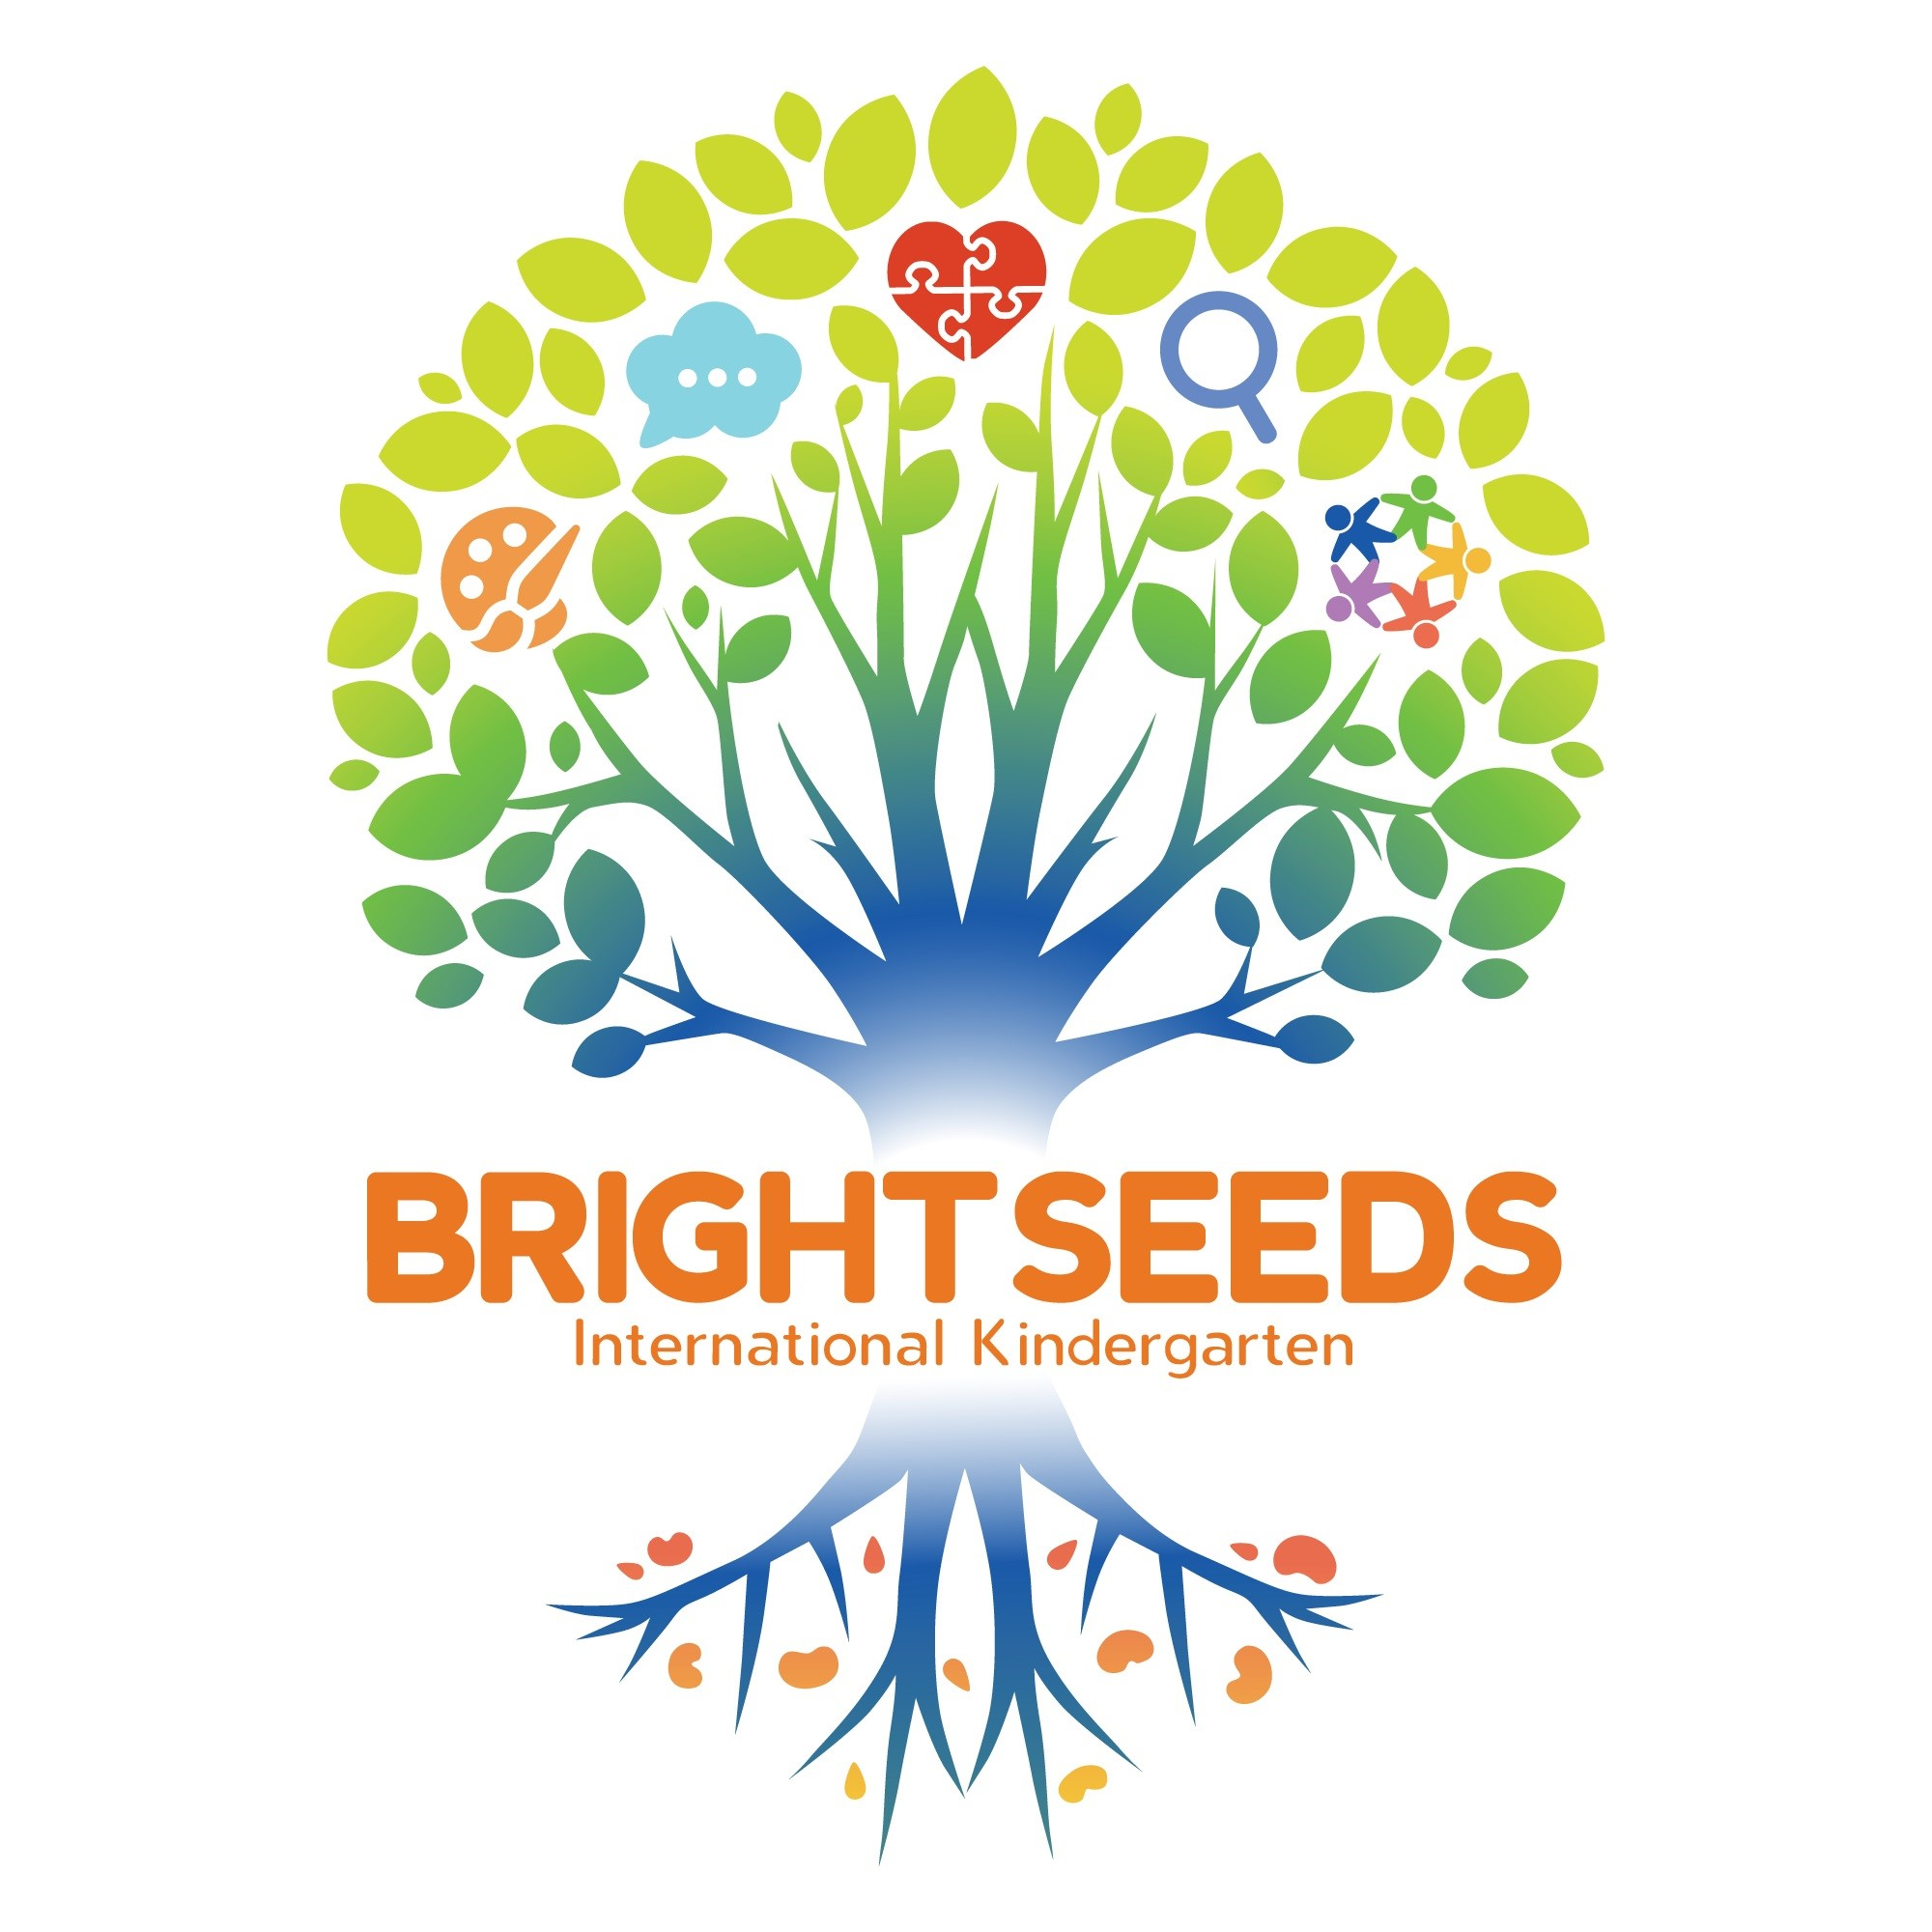 The profile logo of Bright Seeds International Kindergarten